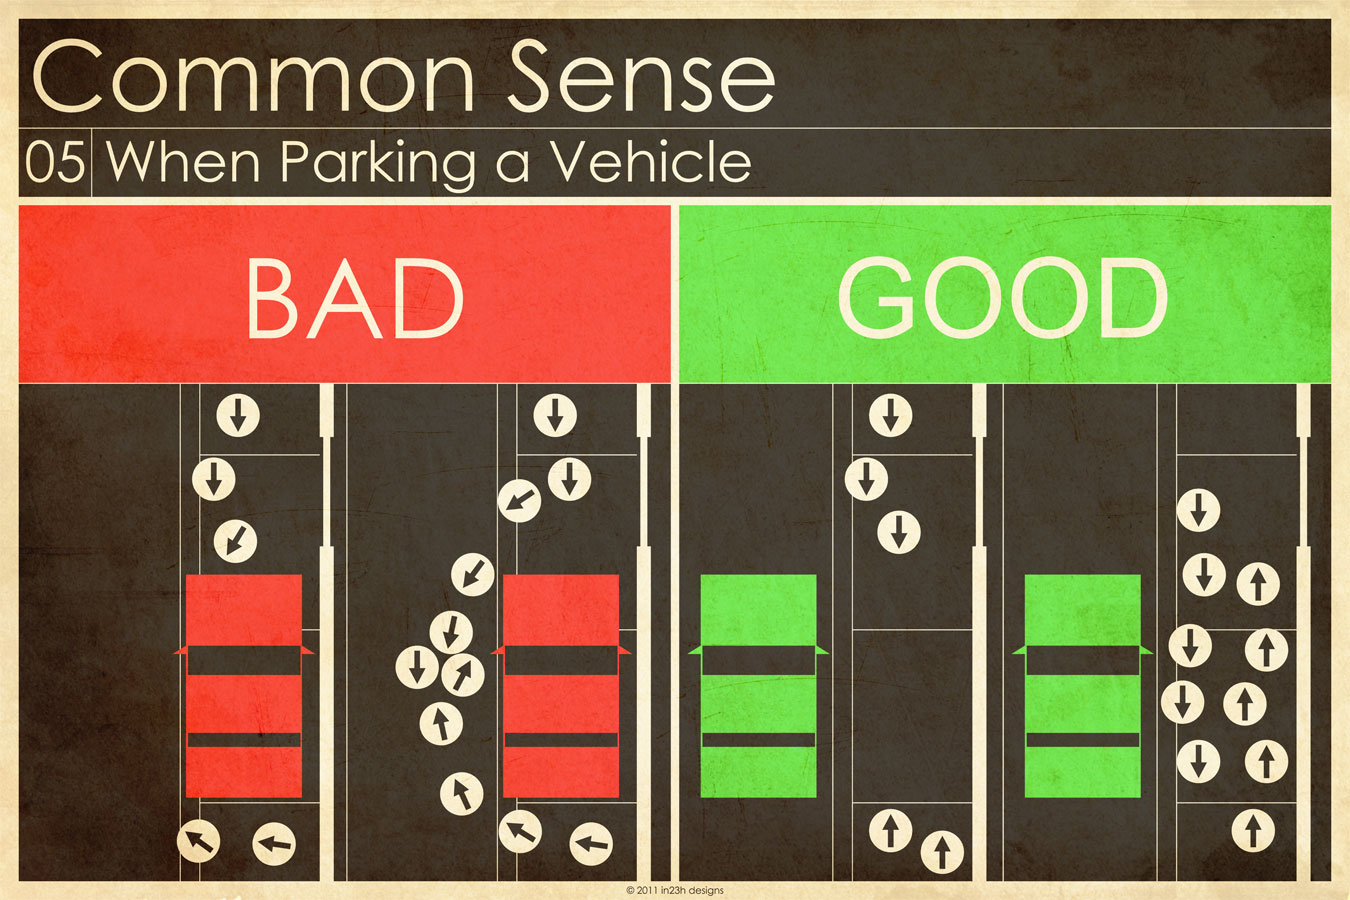 Common Sense 05 - Parking